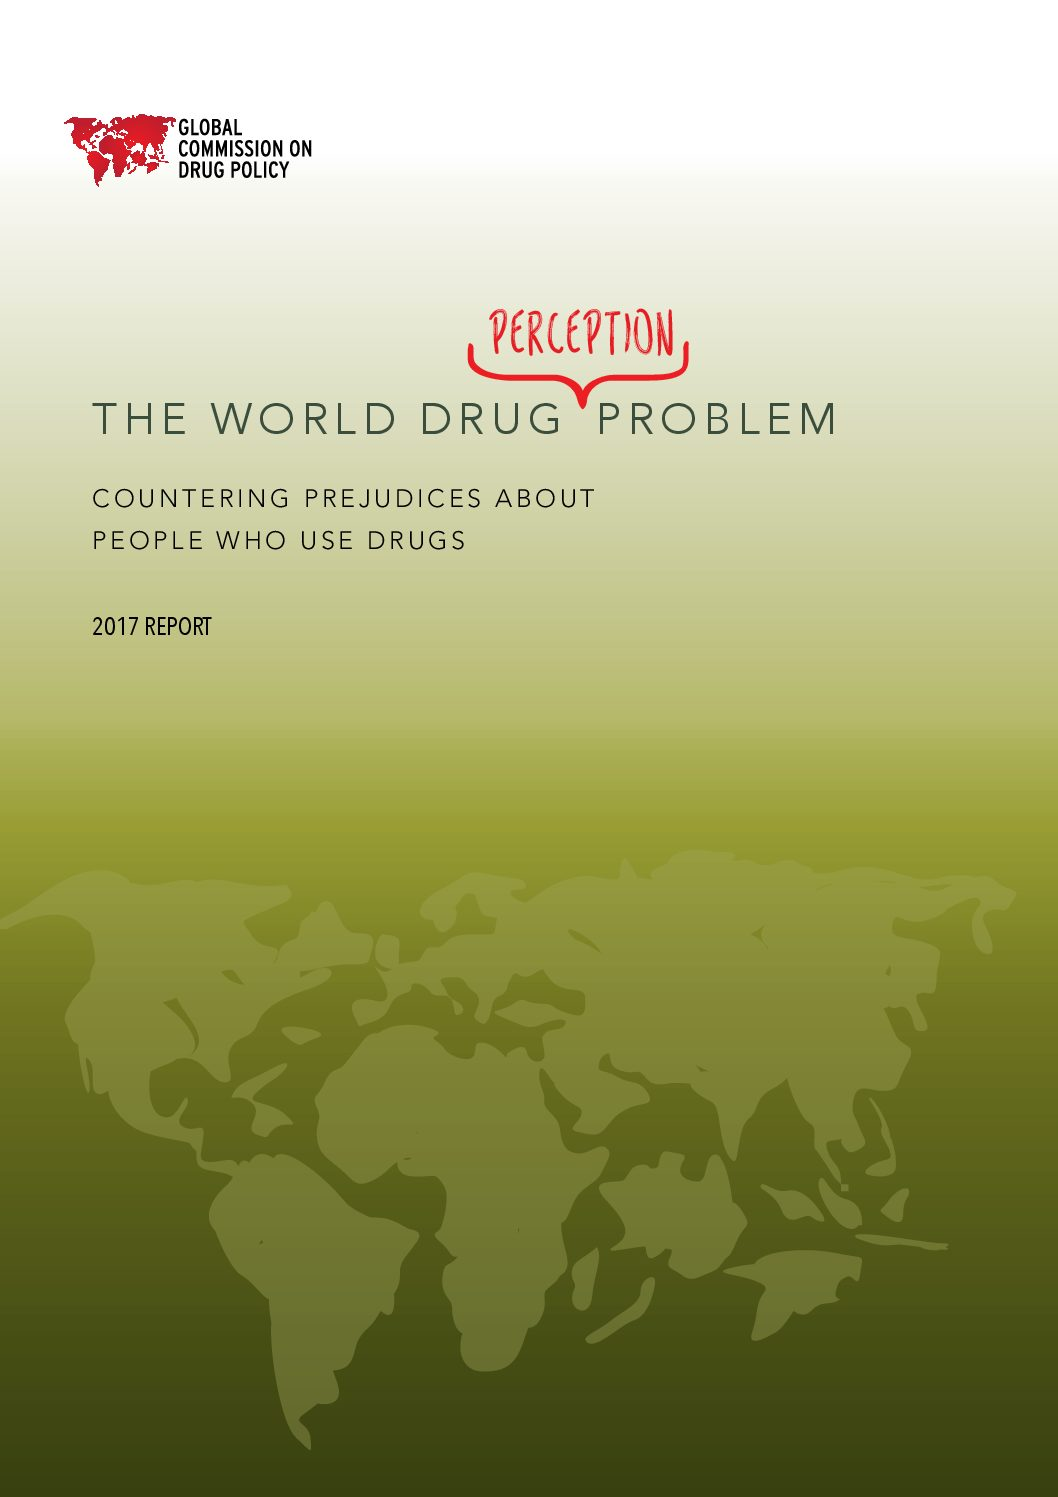 The World Drug Perception Problem: Countering Prejudices About People Who Use Drugs